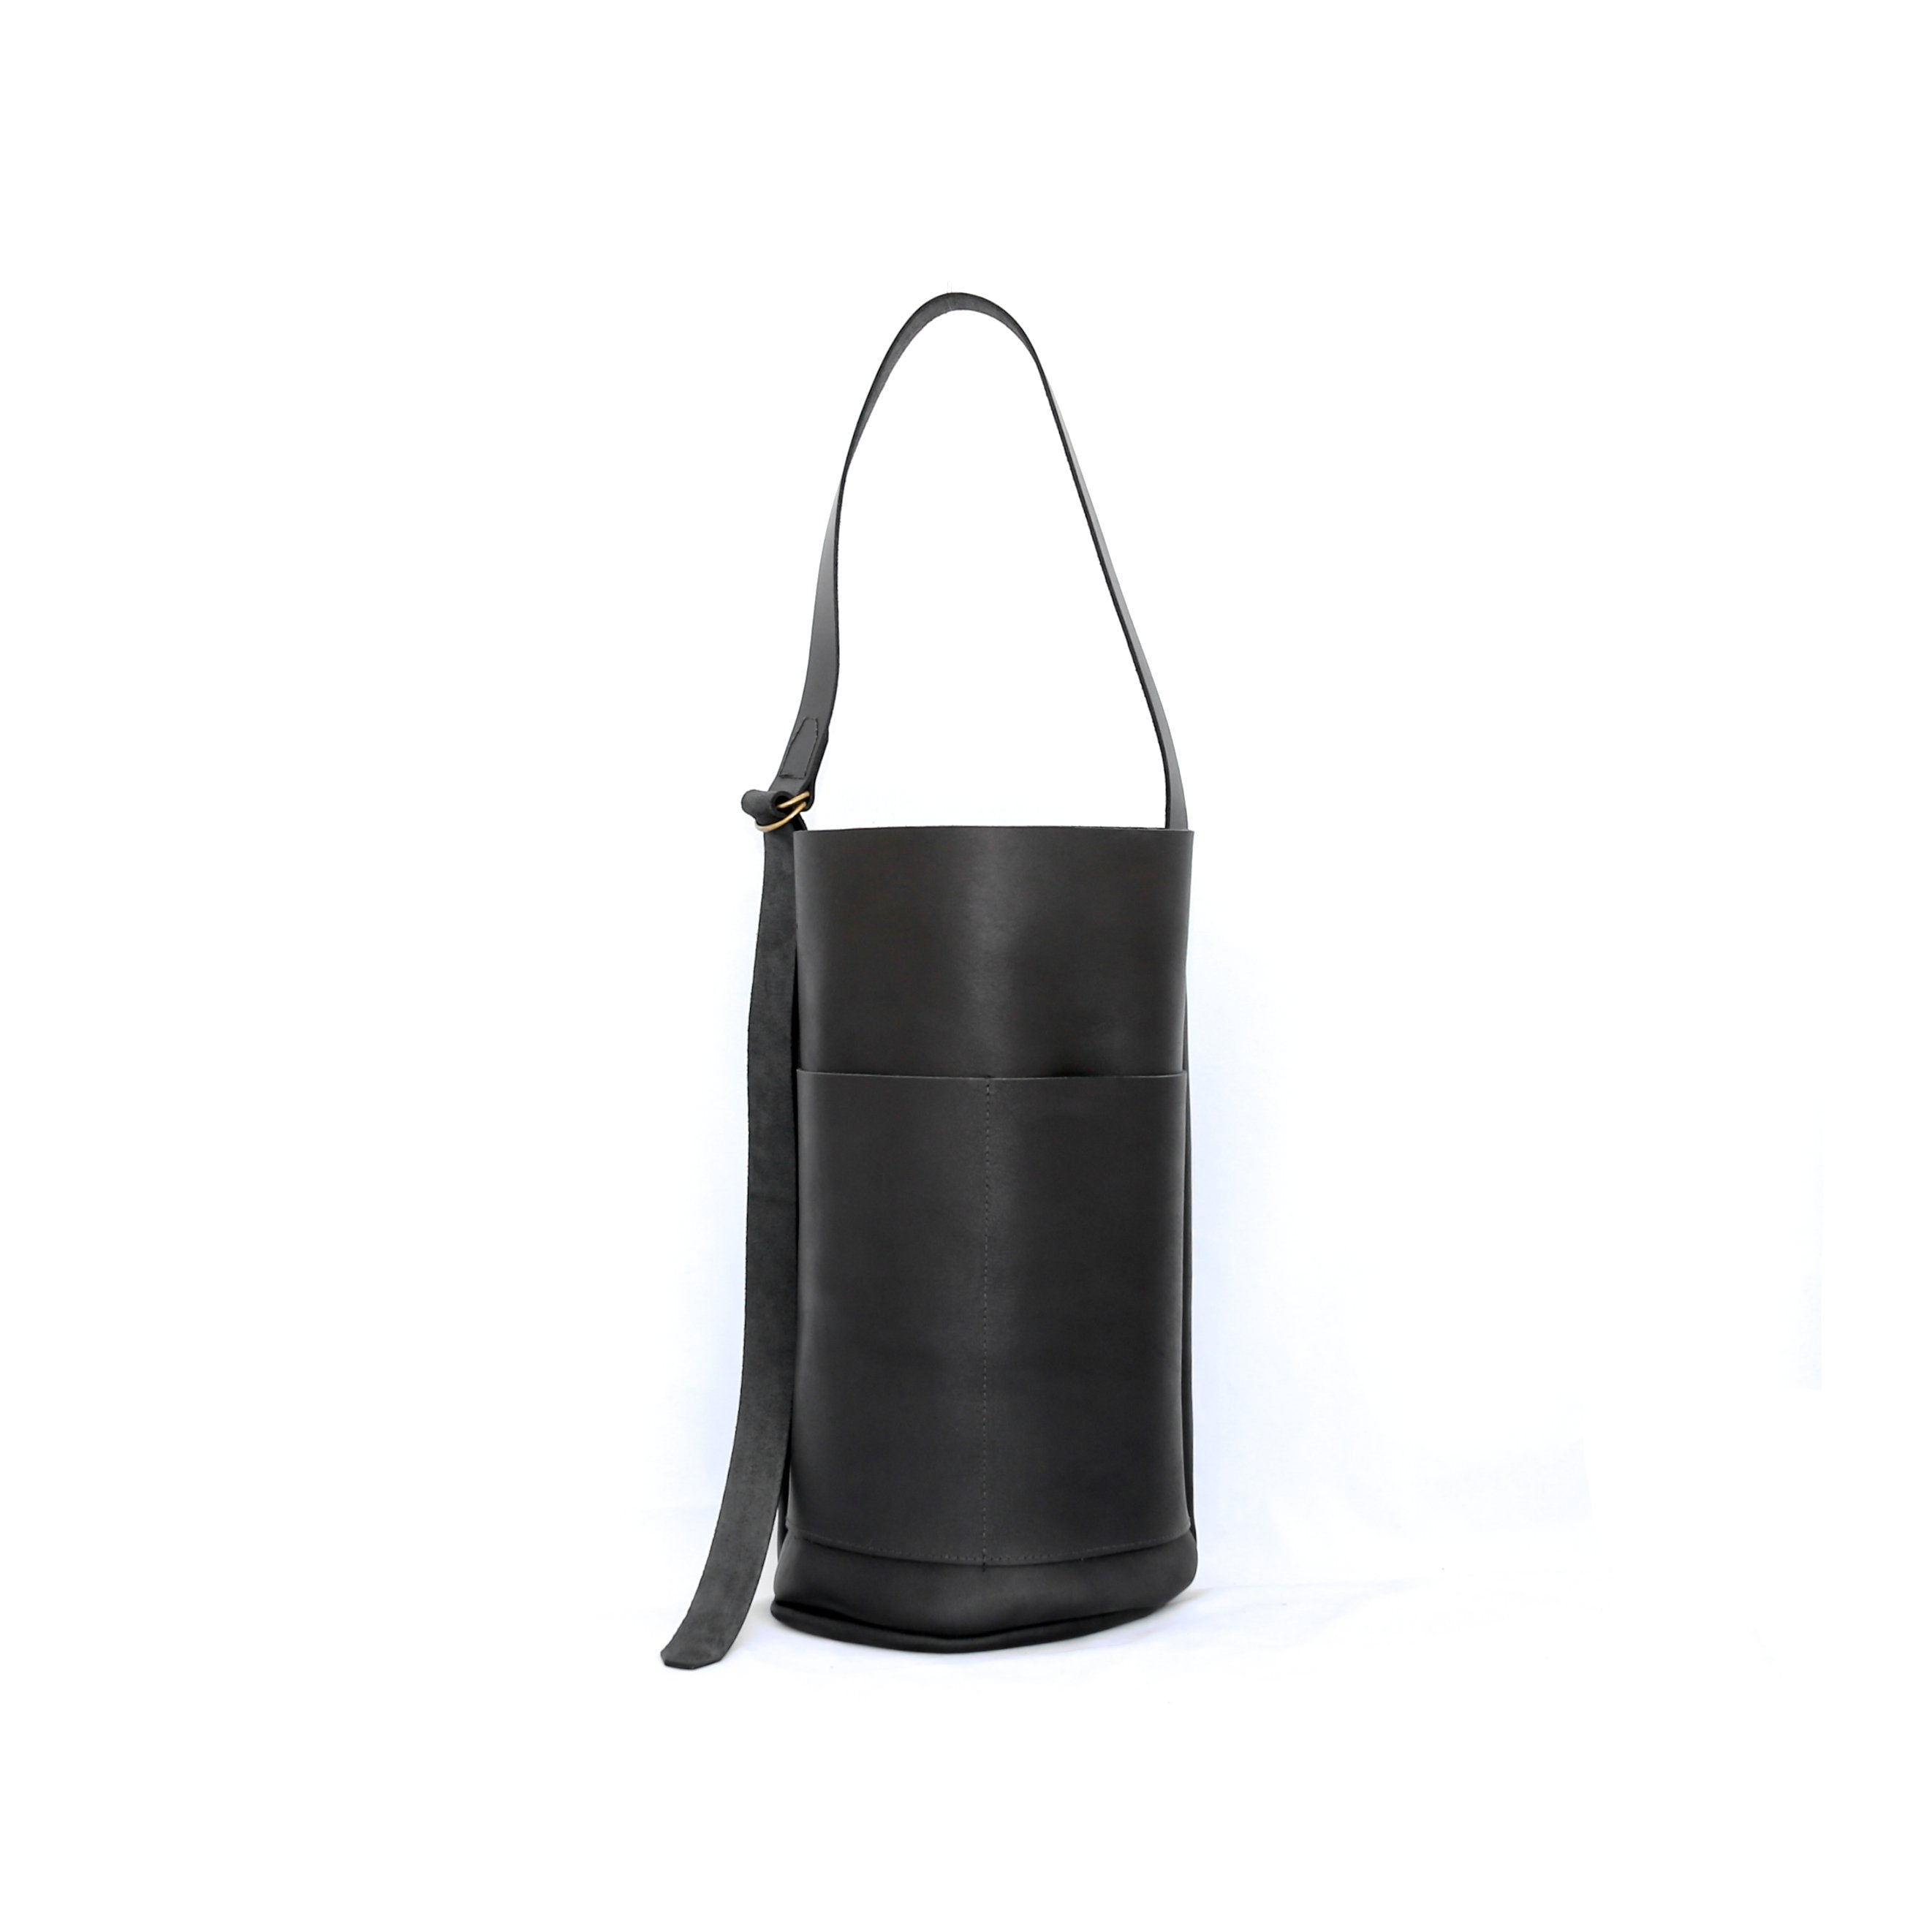 Femme Bucket Leather - handcrafted by Market Canvas Leather in Tofino, BC, Canada